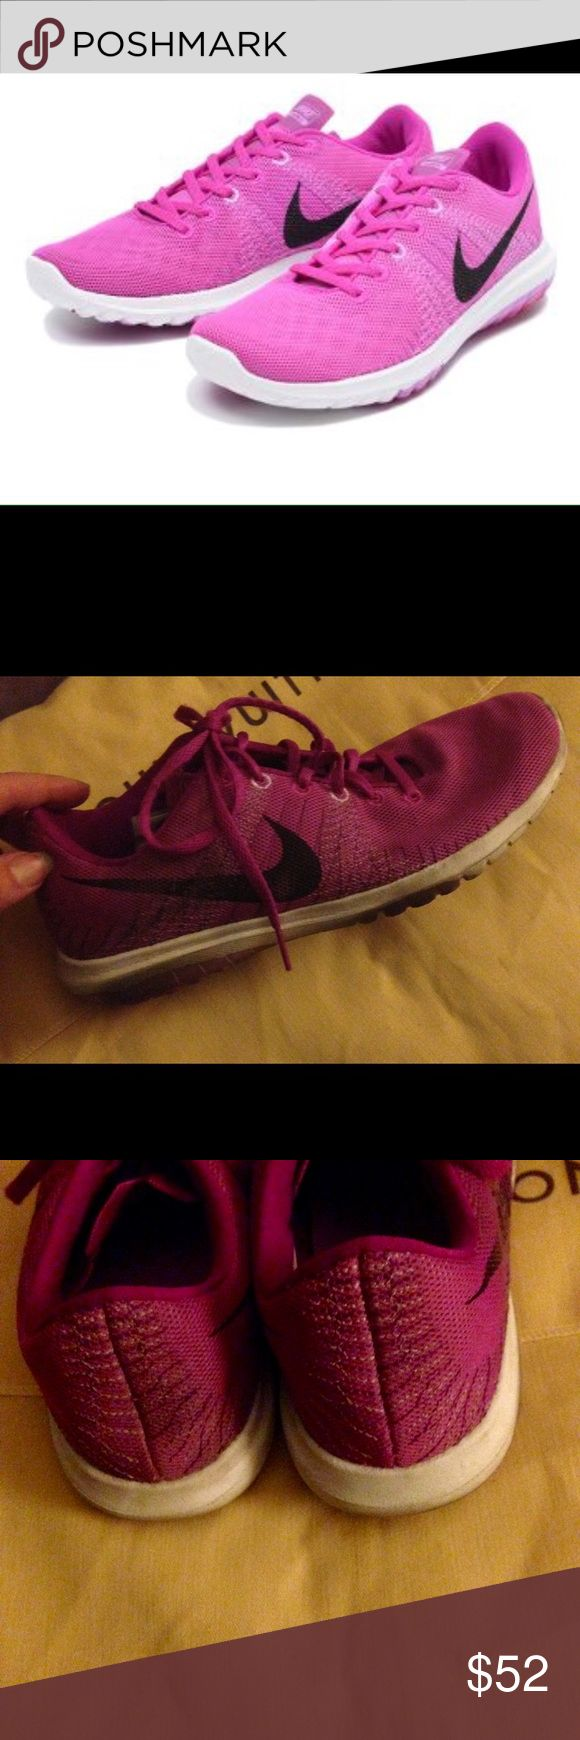 Women's Nike flex running shoes sz 8 Women's Nike flex running shoes sz 8. Great mesh front for comfort. Comfort sold. Lightweight and comfortable. Great for cross training too. Nike Shoes Sneakers